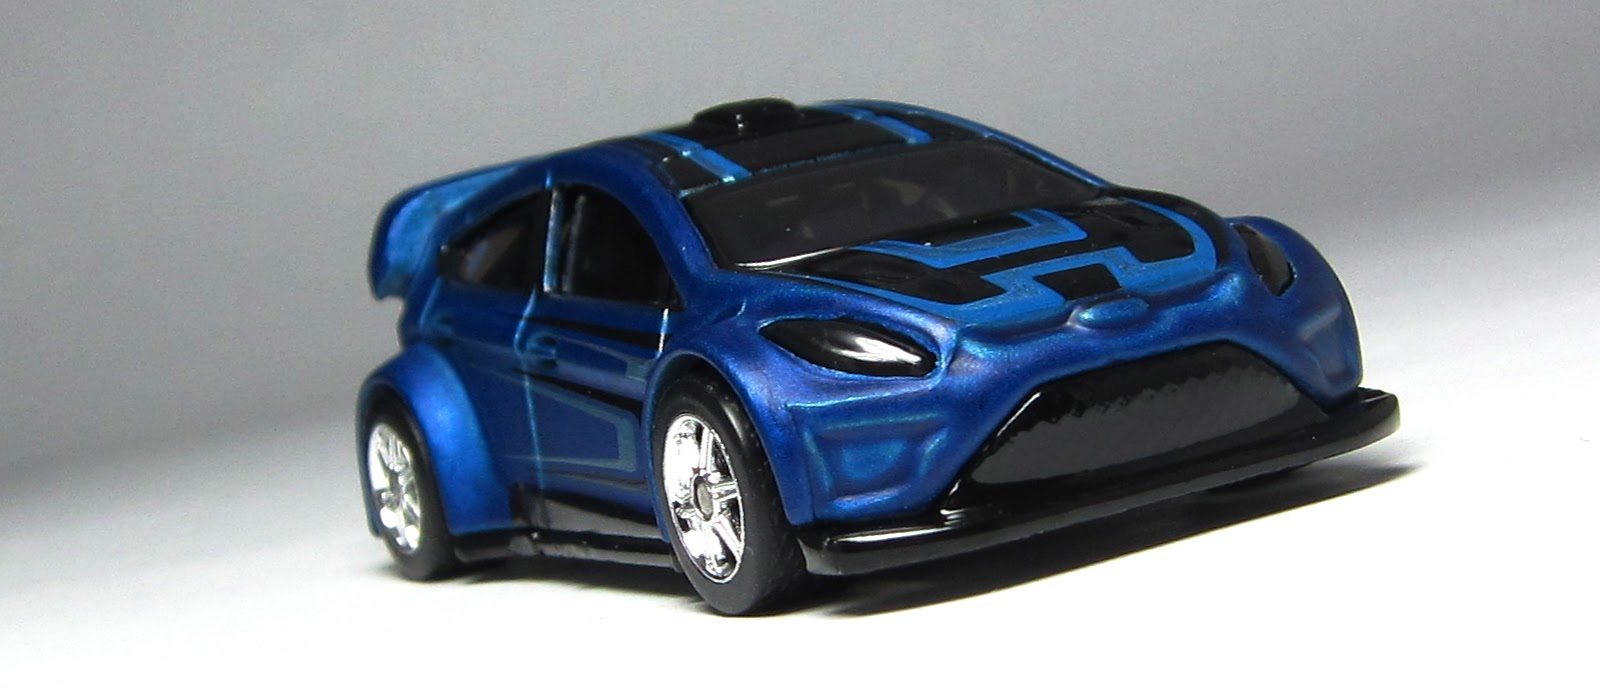 First Look Hot Wheels Boulevard Ford Fiesta The Lamley Group